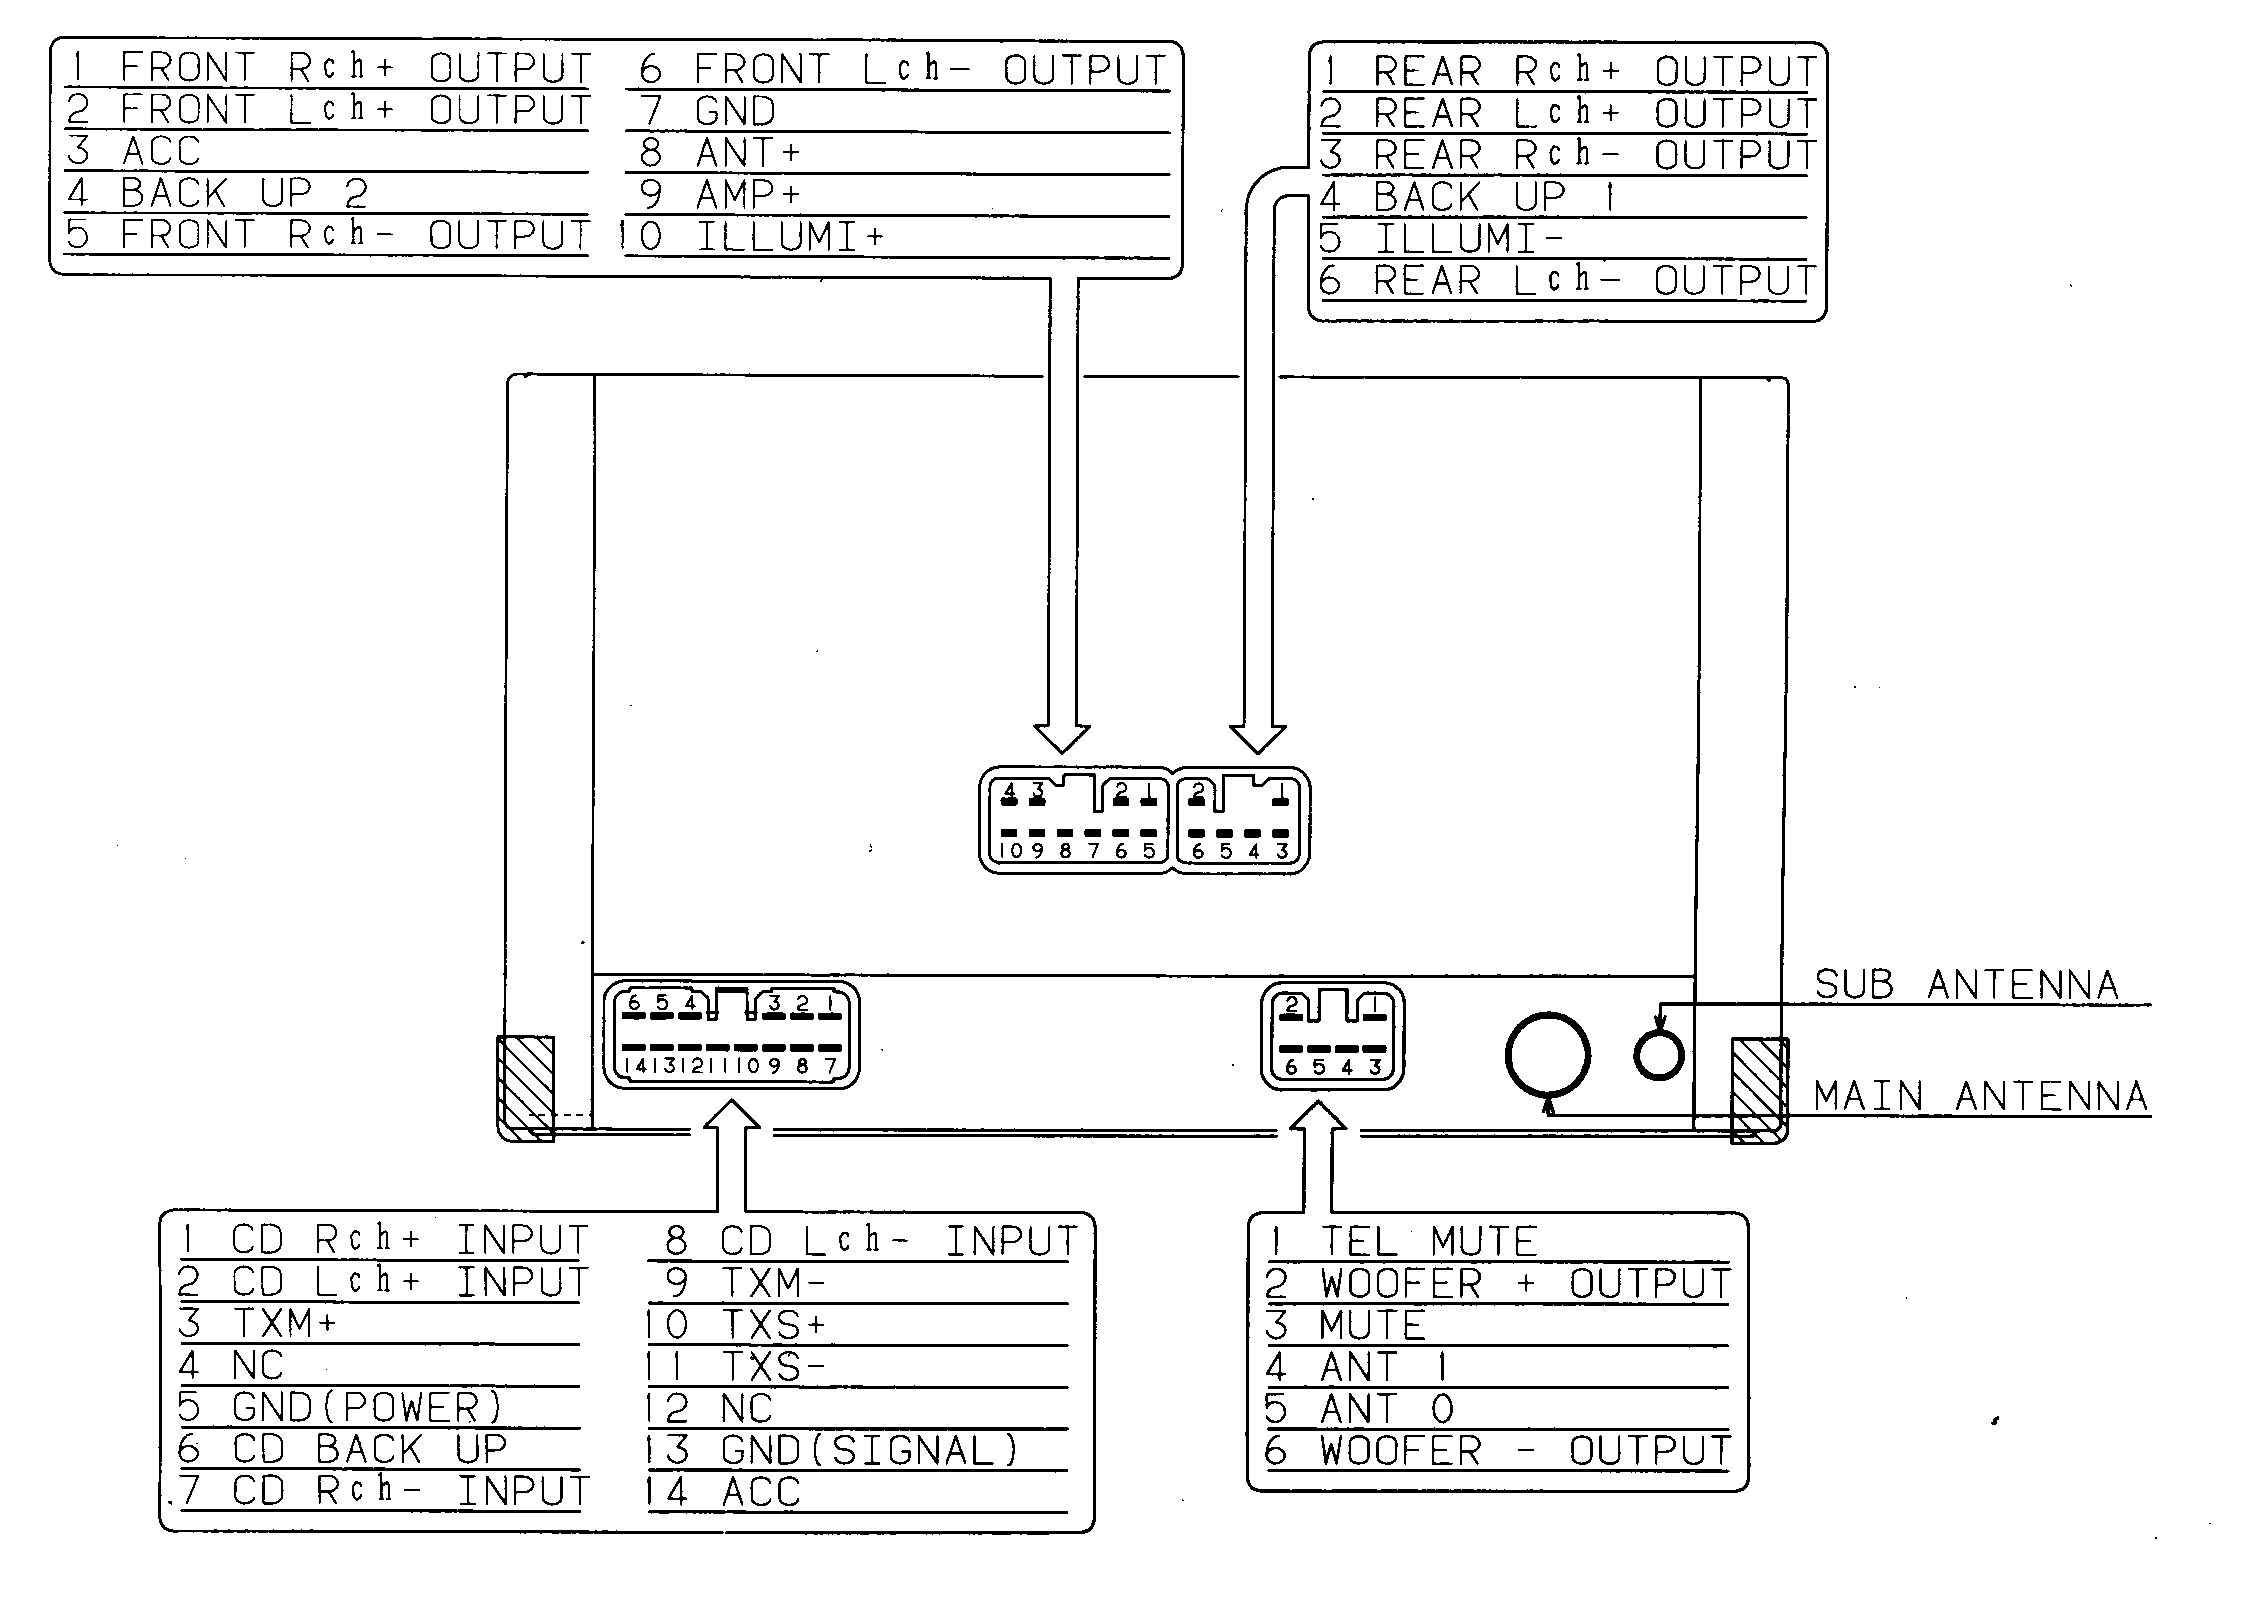 WireHarnessLexus121001 car audio wire diagram codes lexus factory car stereo repair dock wiring diagram at bakdesigns.co